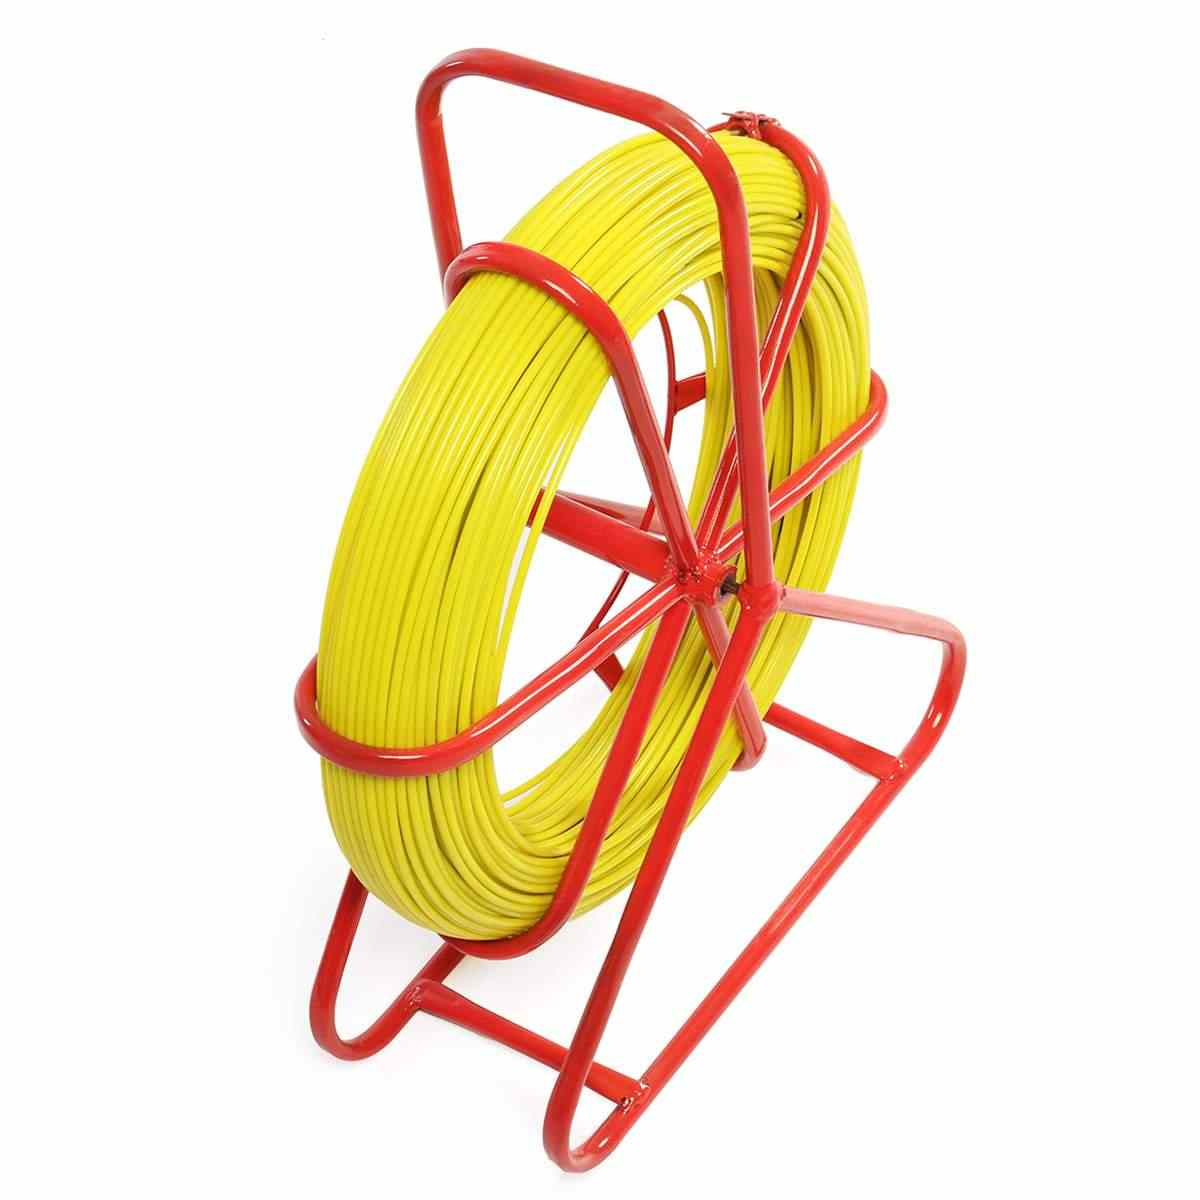 4.5mm Fish Tape Fiberglass Wire Cable Running Rod Duct Rodder Puller Tool With Superior Pulling Strength